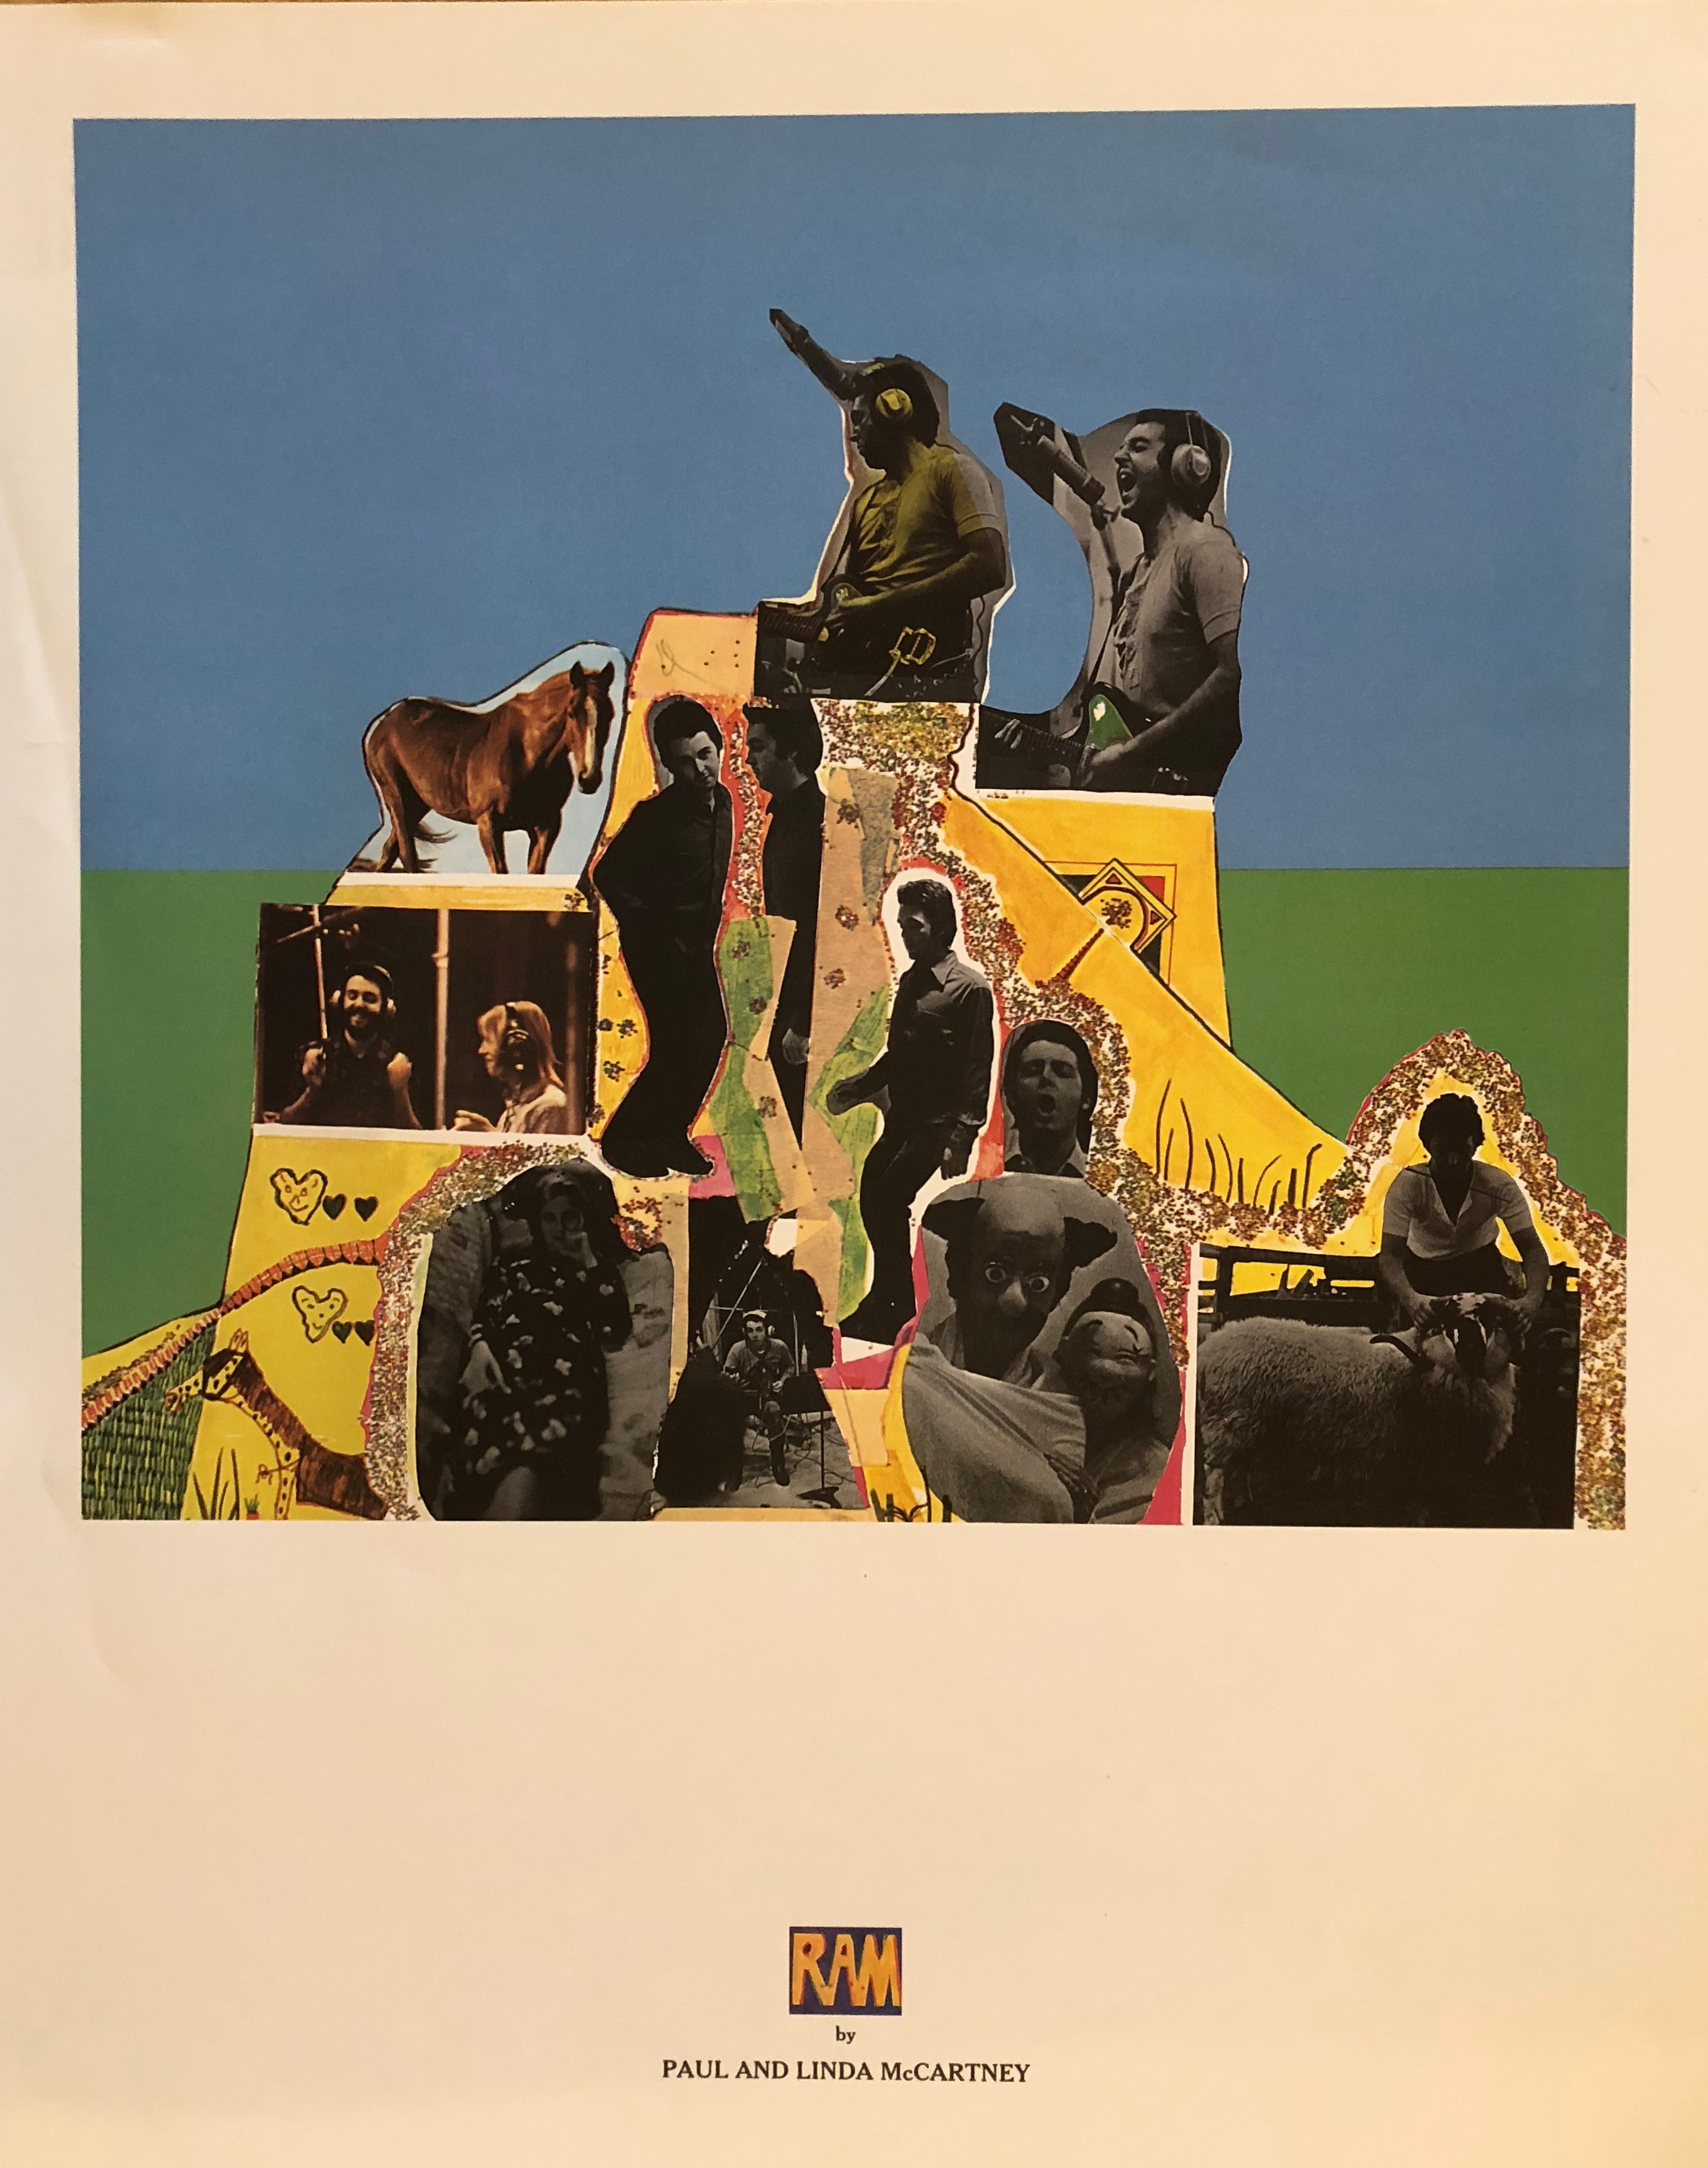 Paul McCartney RAM Lithograph - Why? Because we have one